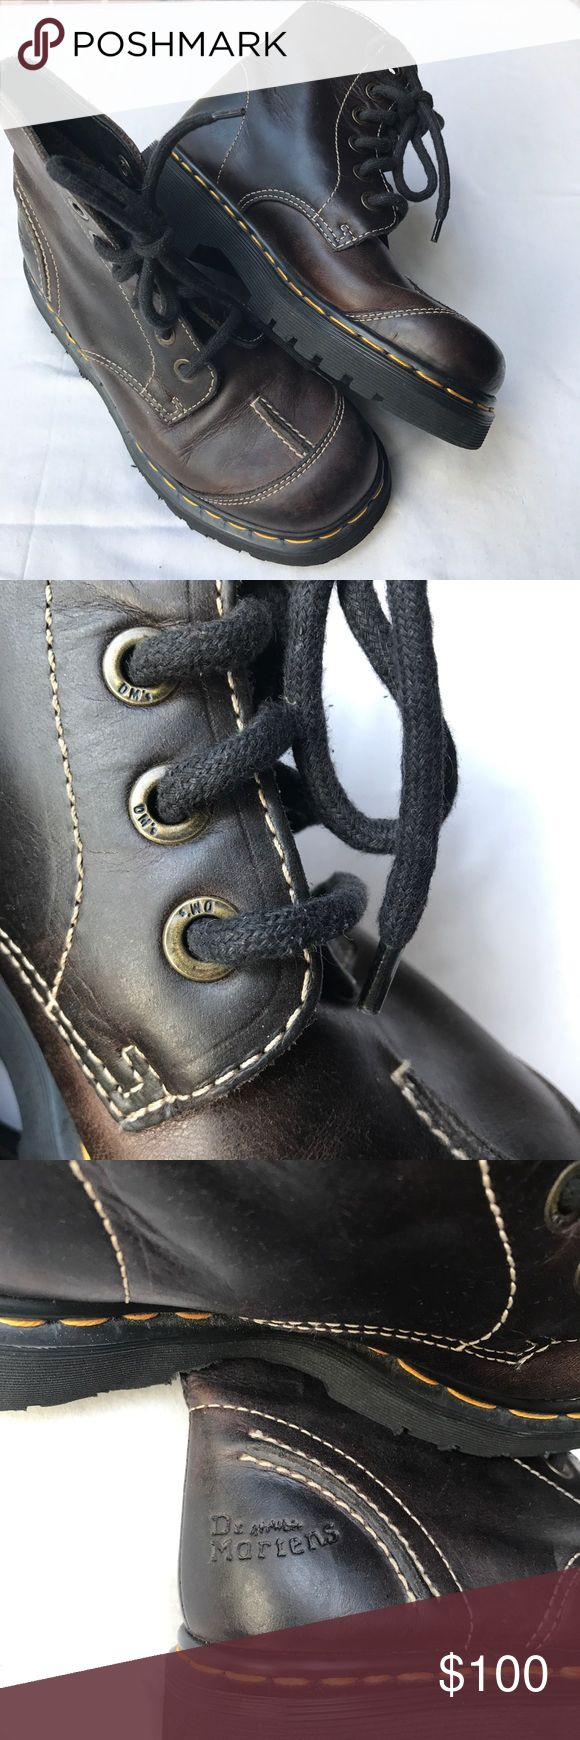 Dr. Marten 100% brown leather lace up boots EUC Dr. Marten 100% brown leather lace up boots sz 7 US women, 5 UK. In EUC beautiful leather with chunky soles. Smoke and Pet free home. *Inserts have been removed but can be purchased anywhere. Dr. Martens Shoes Lace Up Boots